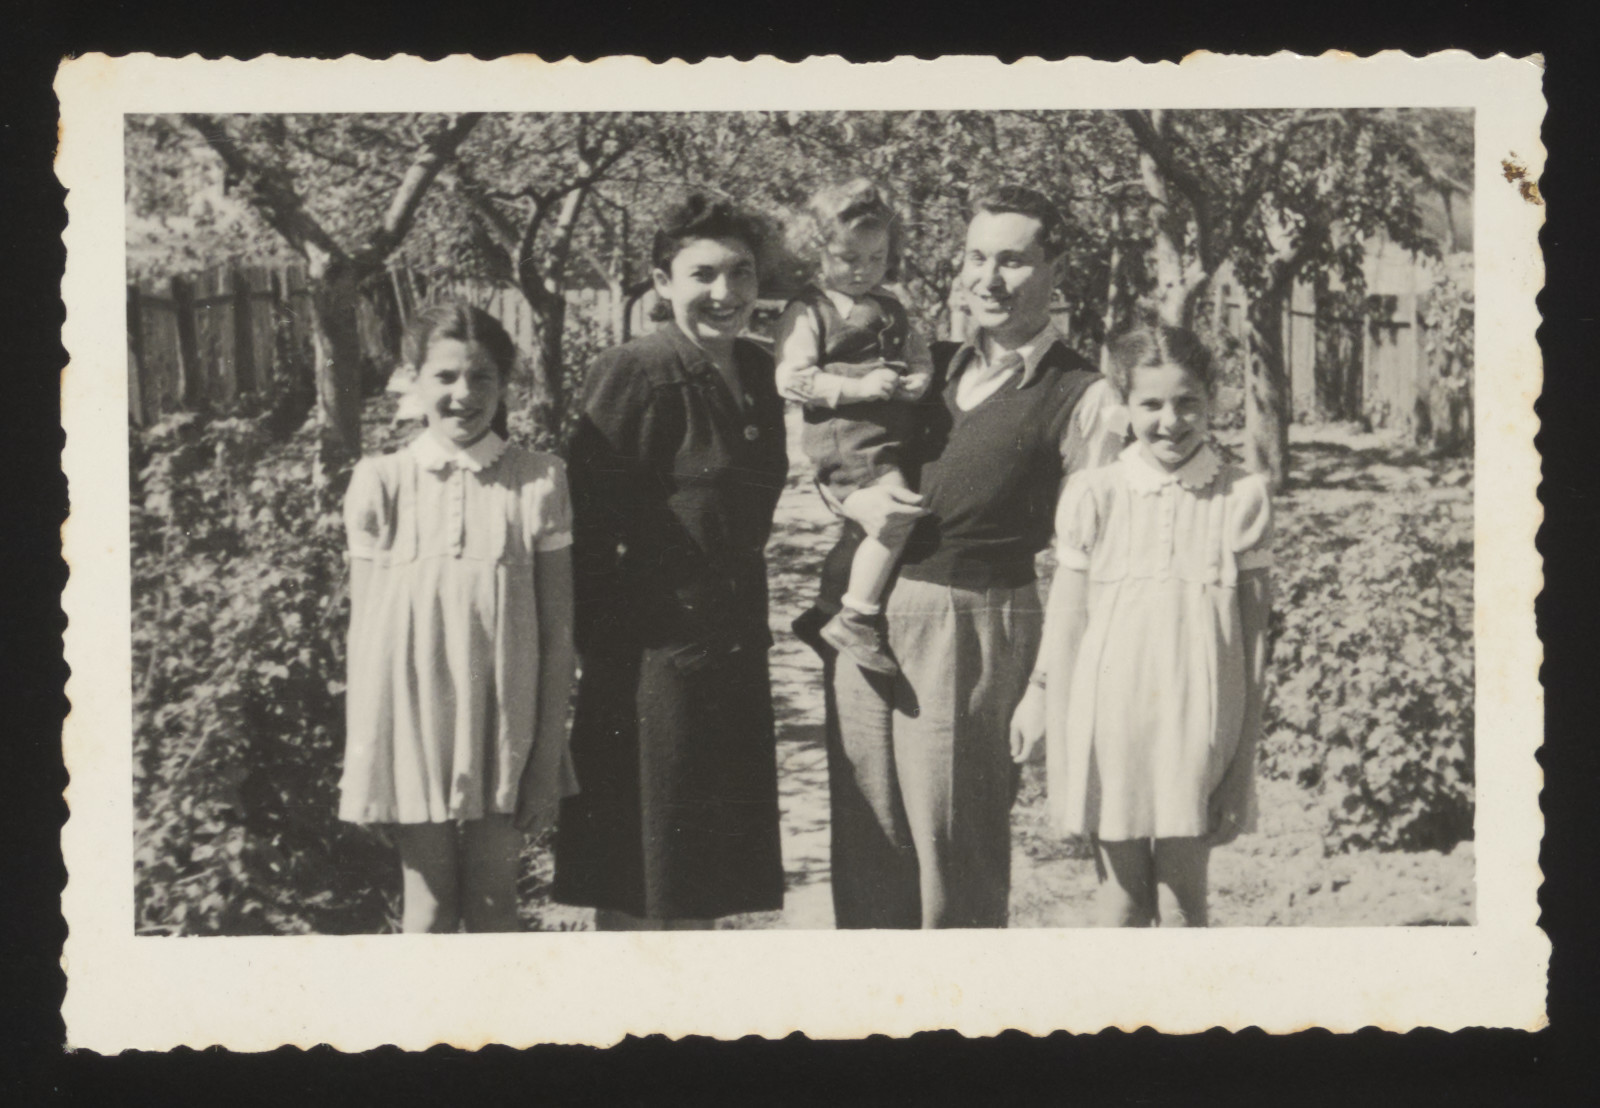 The Csengeri family poses together in a garden after the war.  Pictured are Rosie and Zvi Csengeri, their twin daughters Yehudit and Lea and son, Michael.